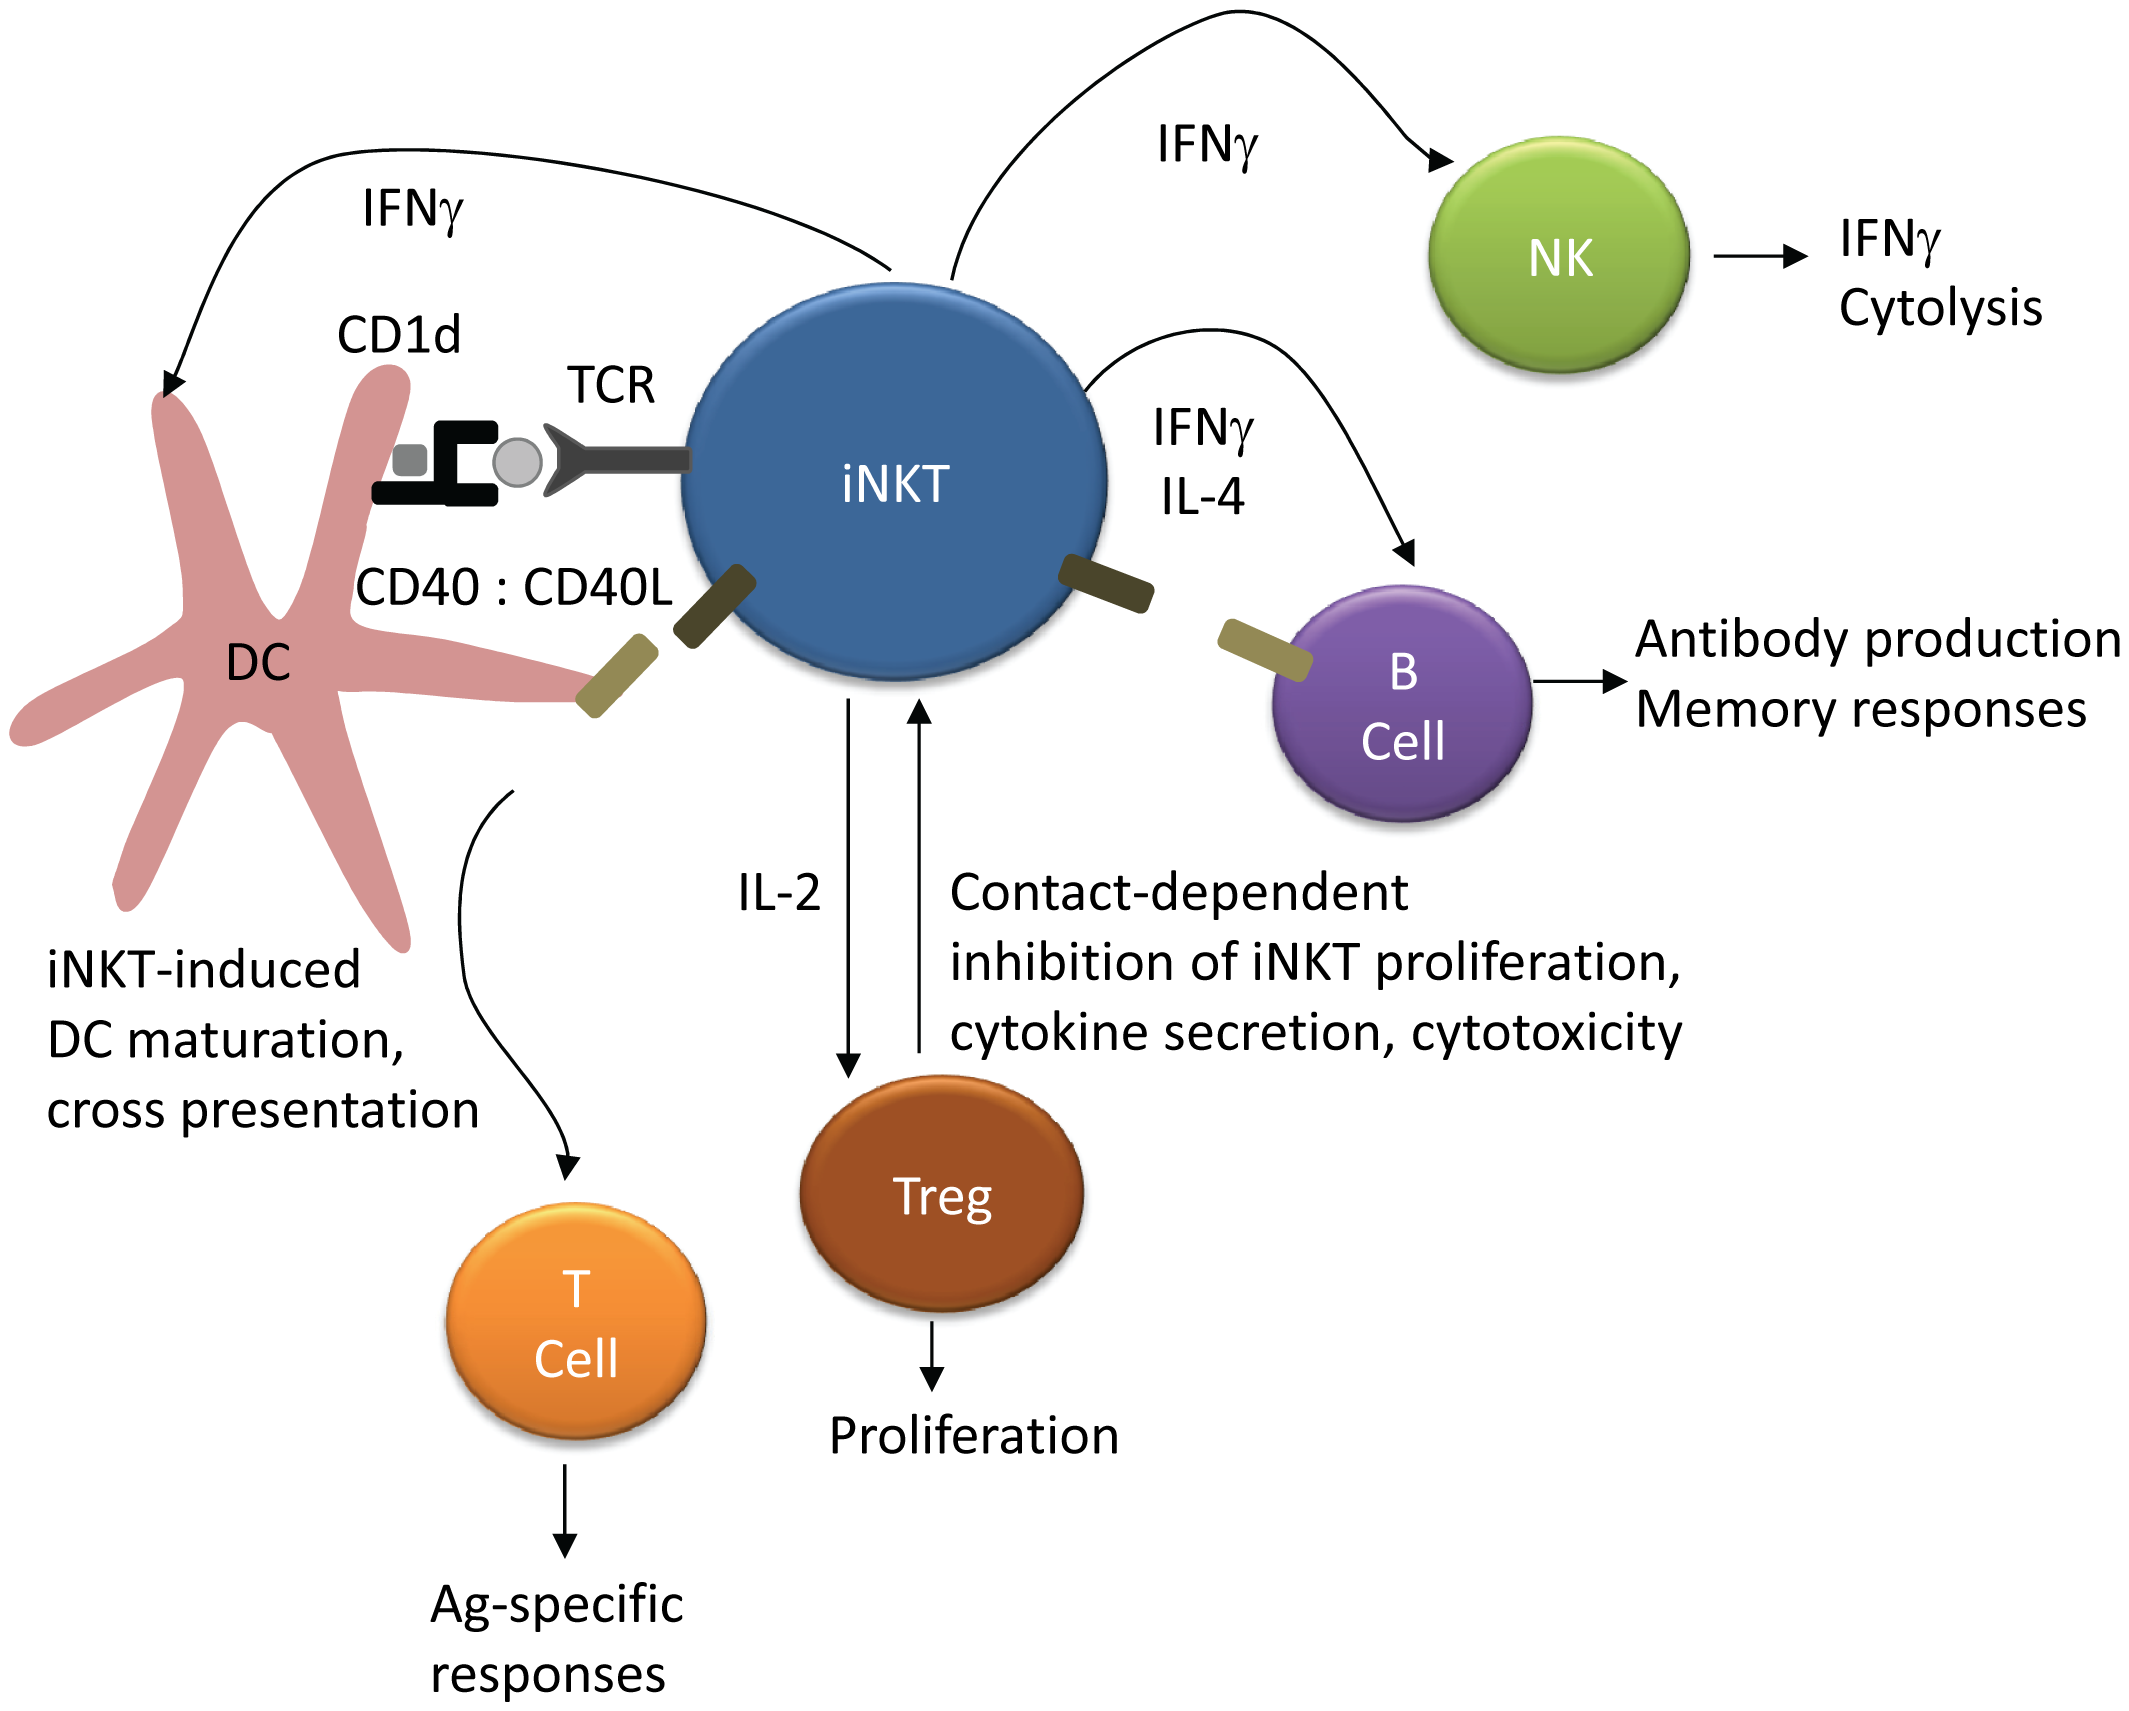 iNKT regulation of NK, T cell, and B cell activation.